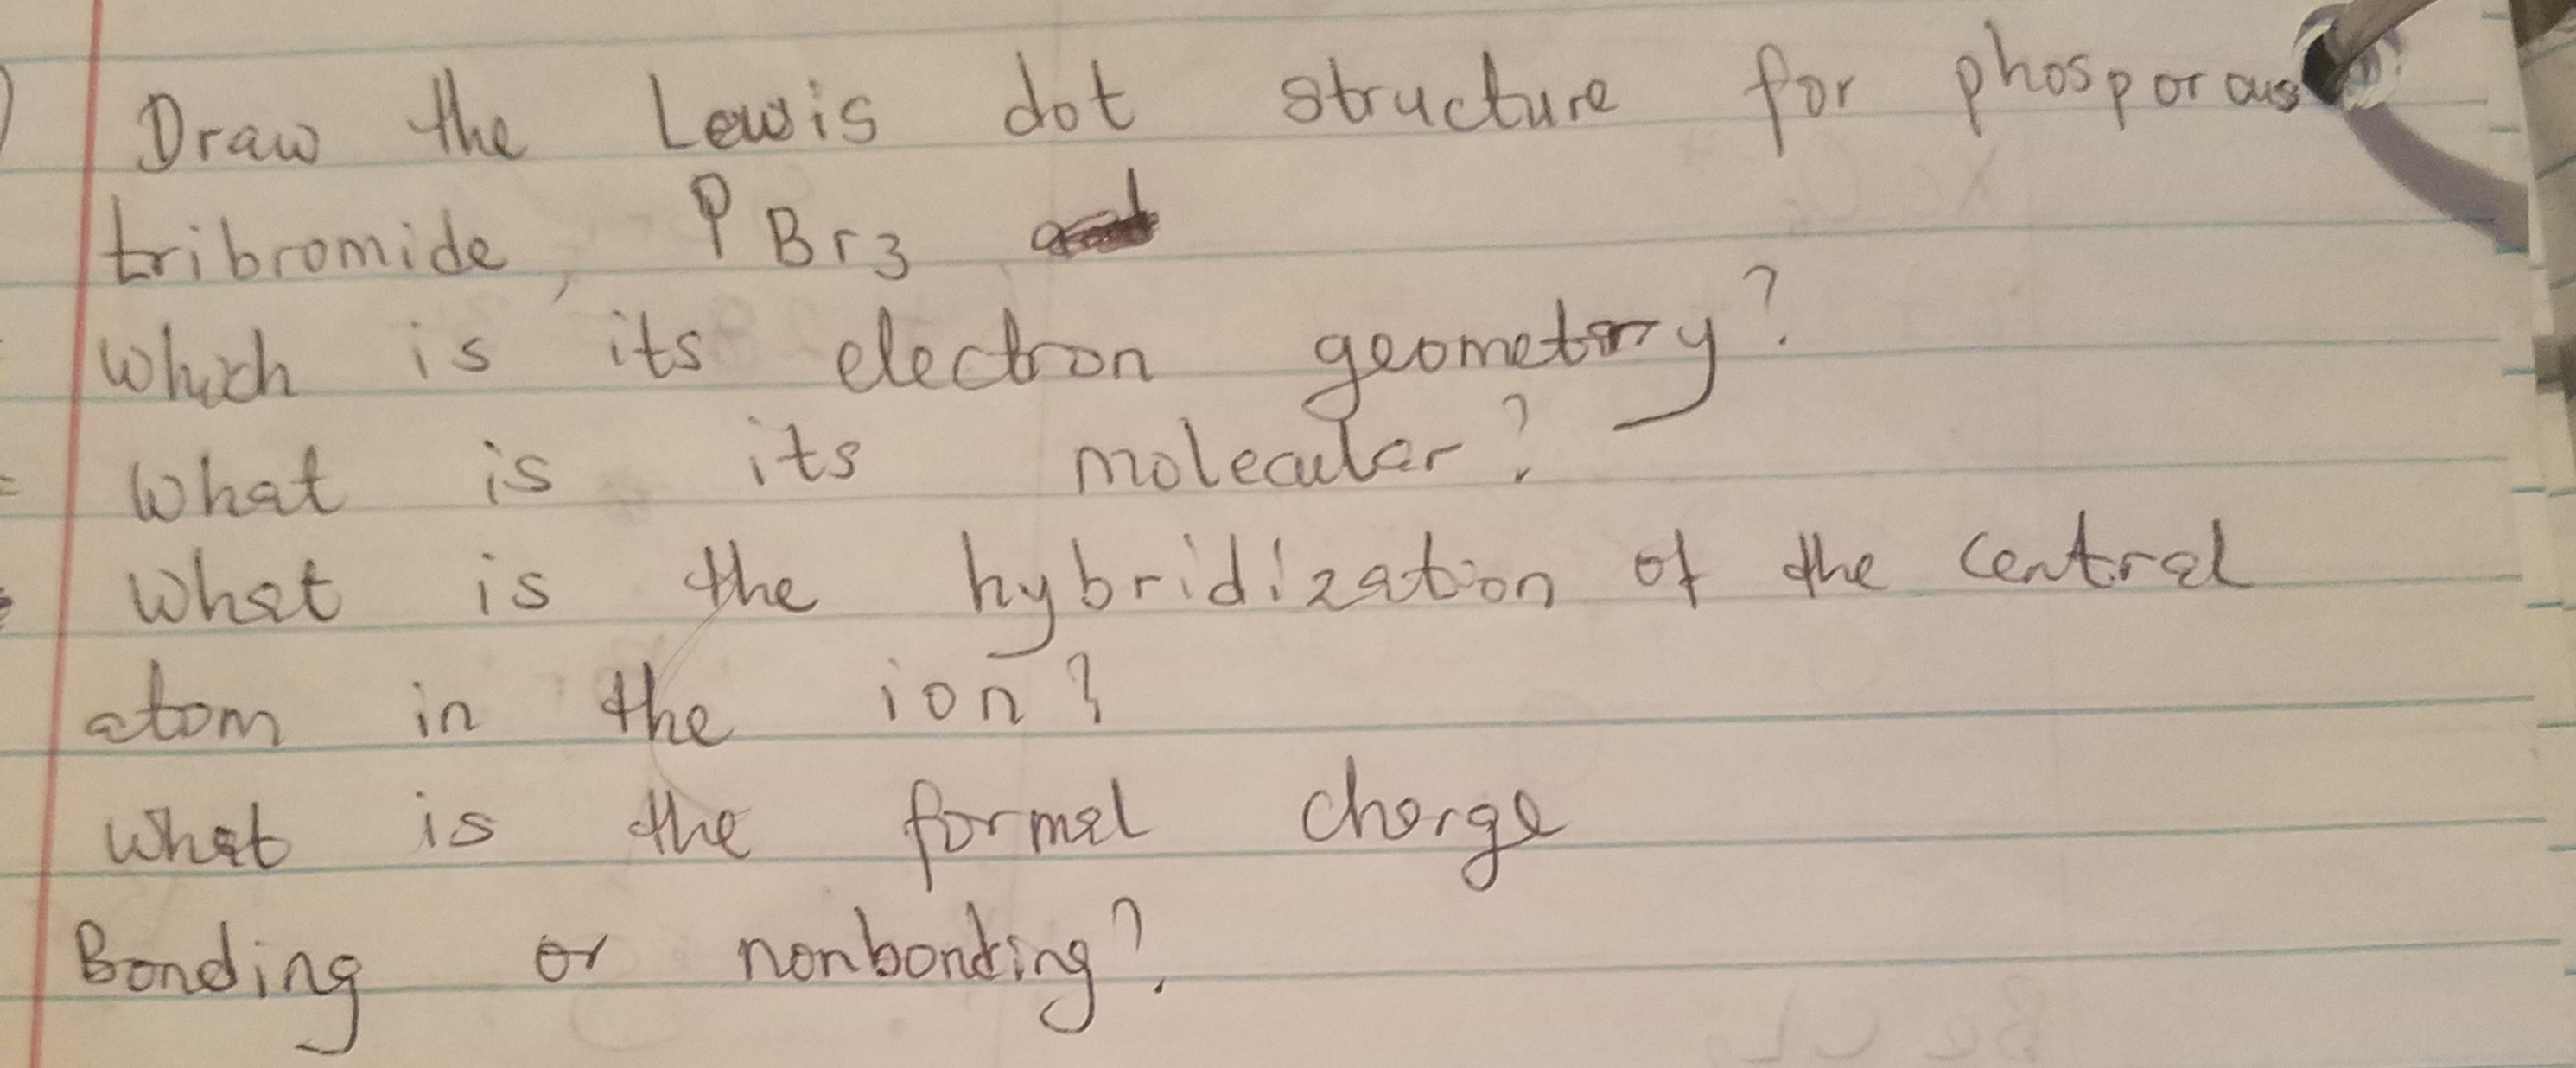 Draw The Lewis Structure For Phosphorus Tribromide  Pbr3  1